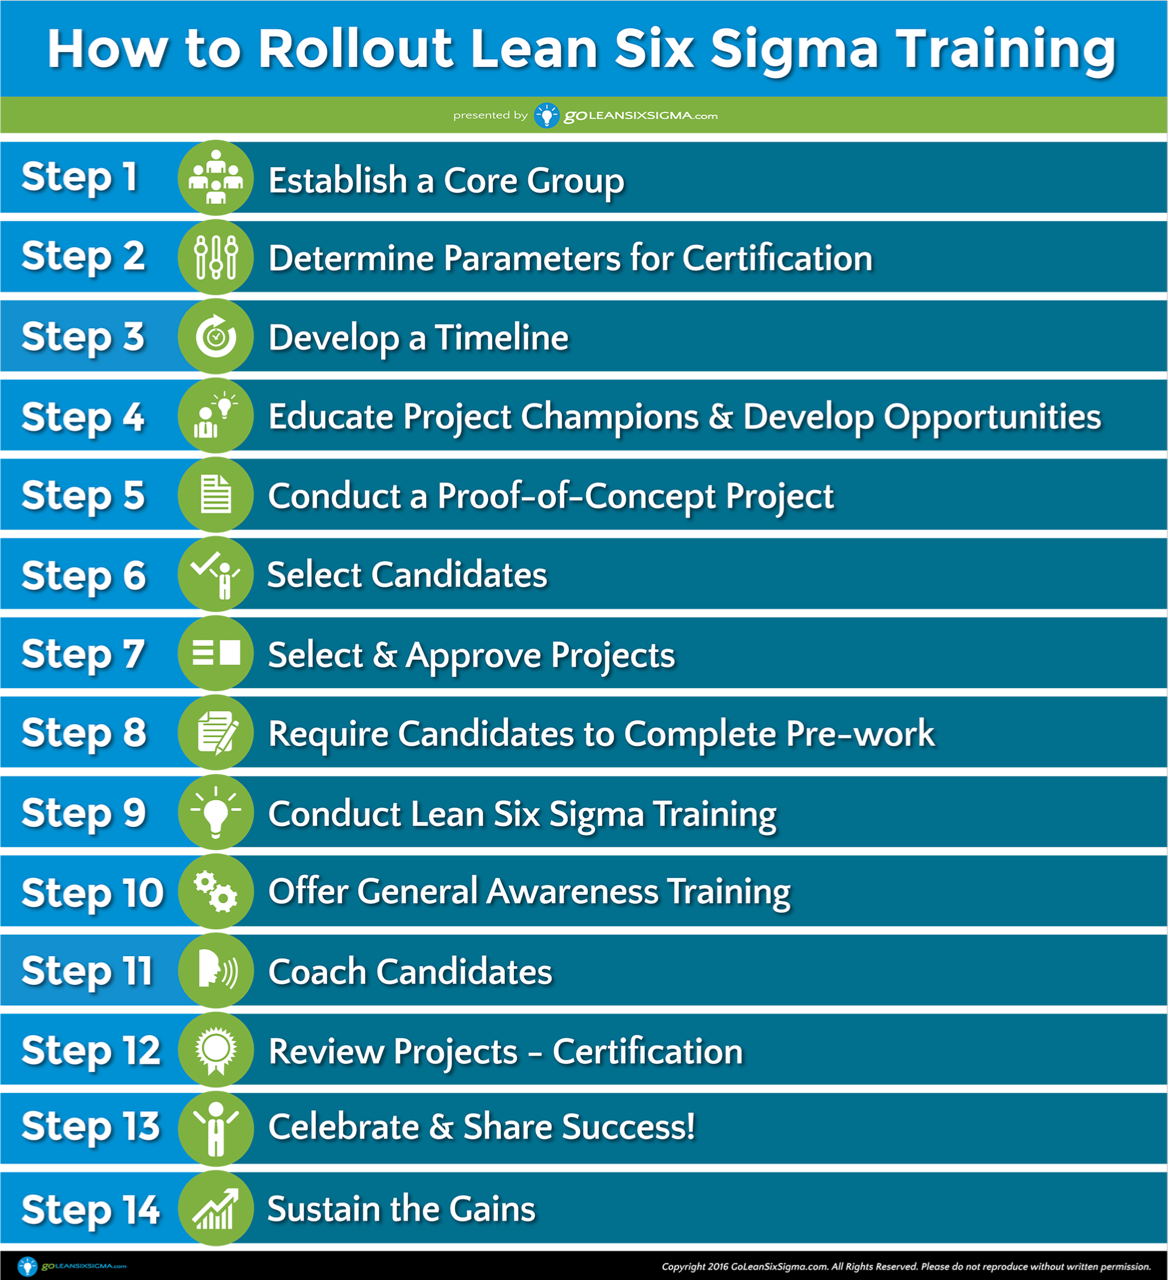 How To Successfully Rollout Lean Six Sigma Training Yourself In 2018